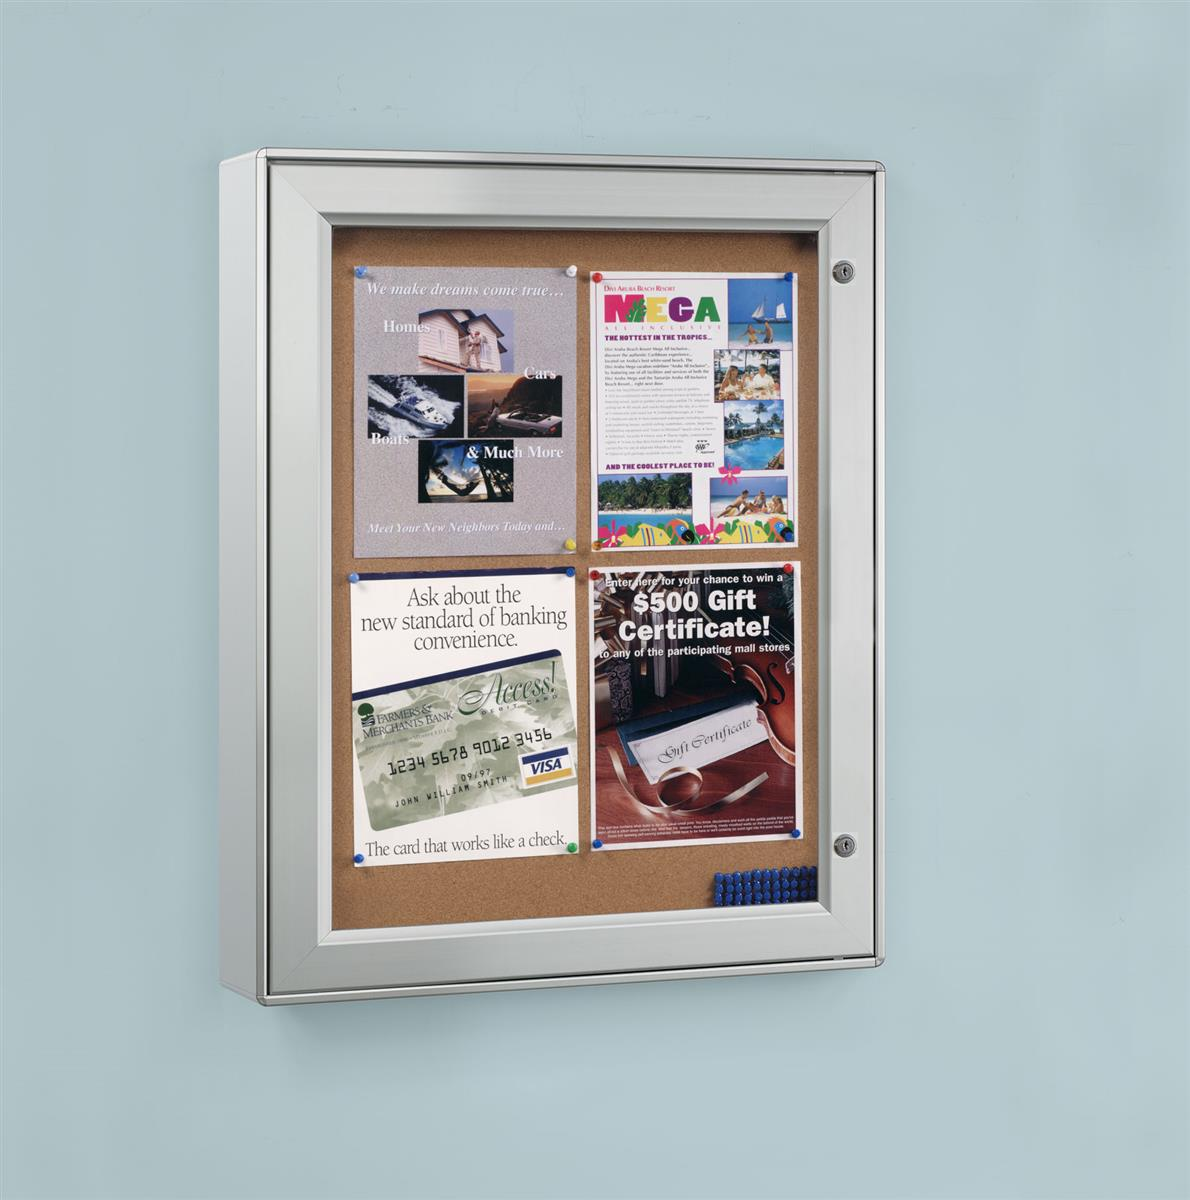 "Wall-Mounted Enclosed Bulletin Board, 23-1/4"" x 29-3/4"", Aluminum Frame, Weather Resistant, Swing-Open Locking Door, For Indoor or Outdoor Use (ODNBCB4A4)"